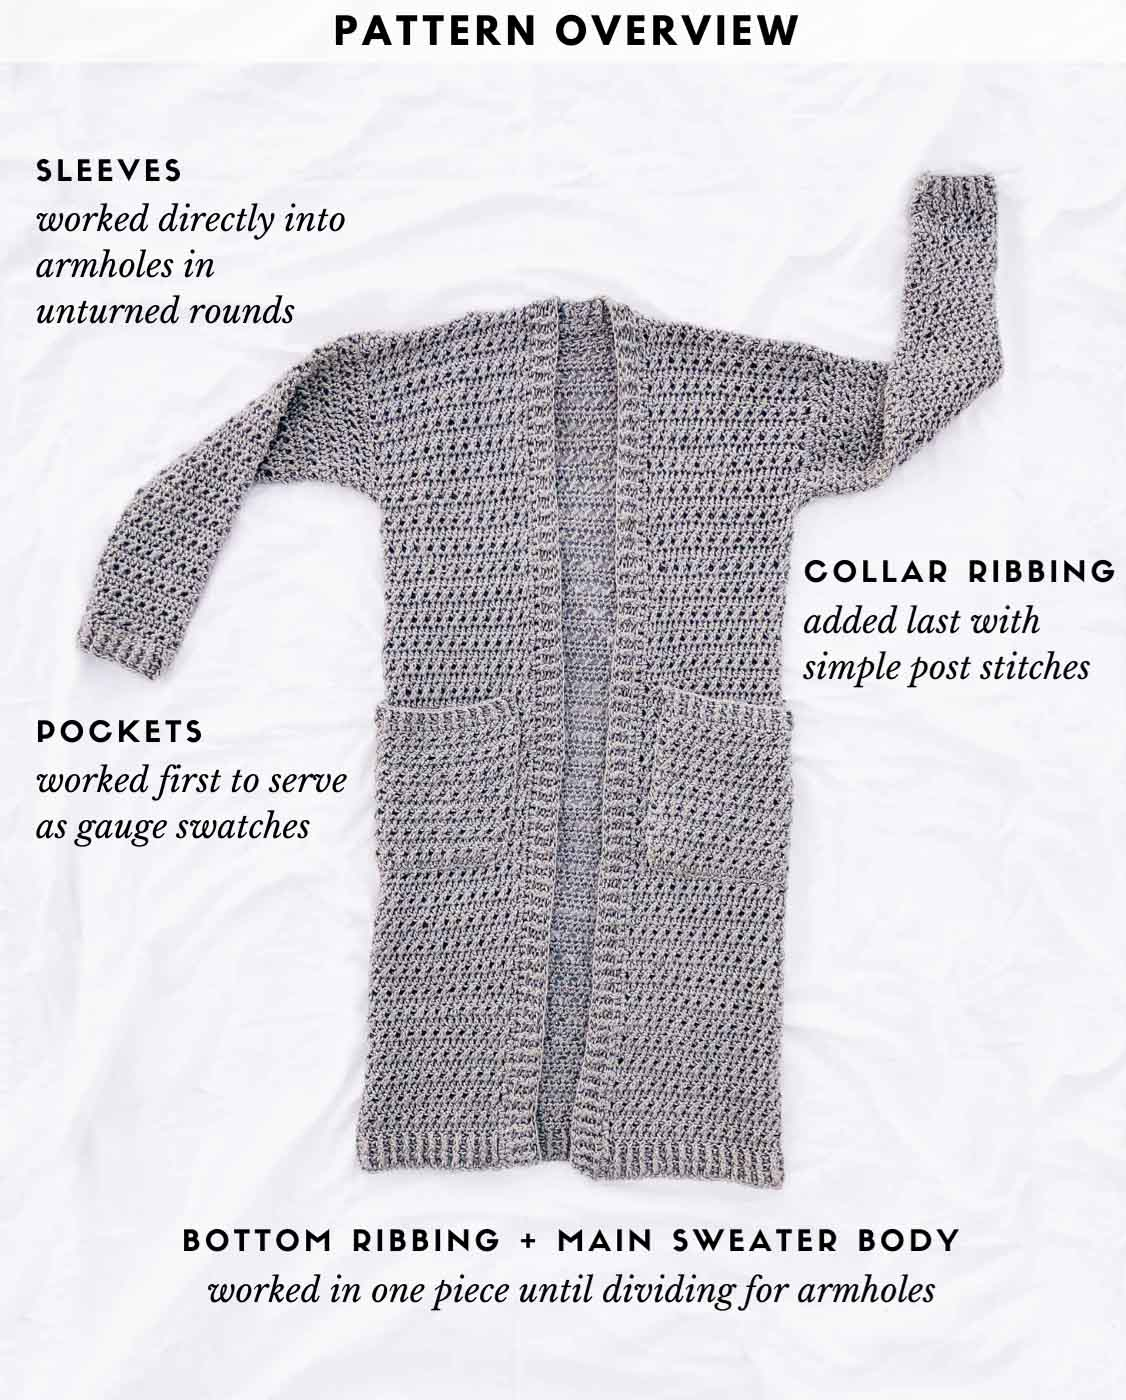 A drapey, long crochet duster pattern explained via a photo of the sweater laying on a white background.